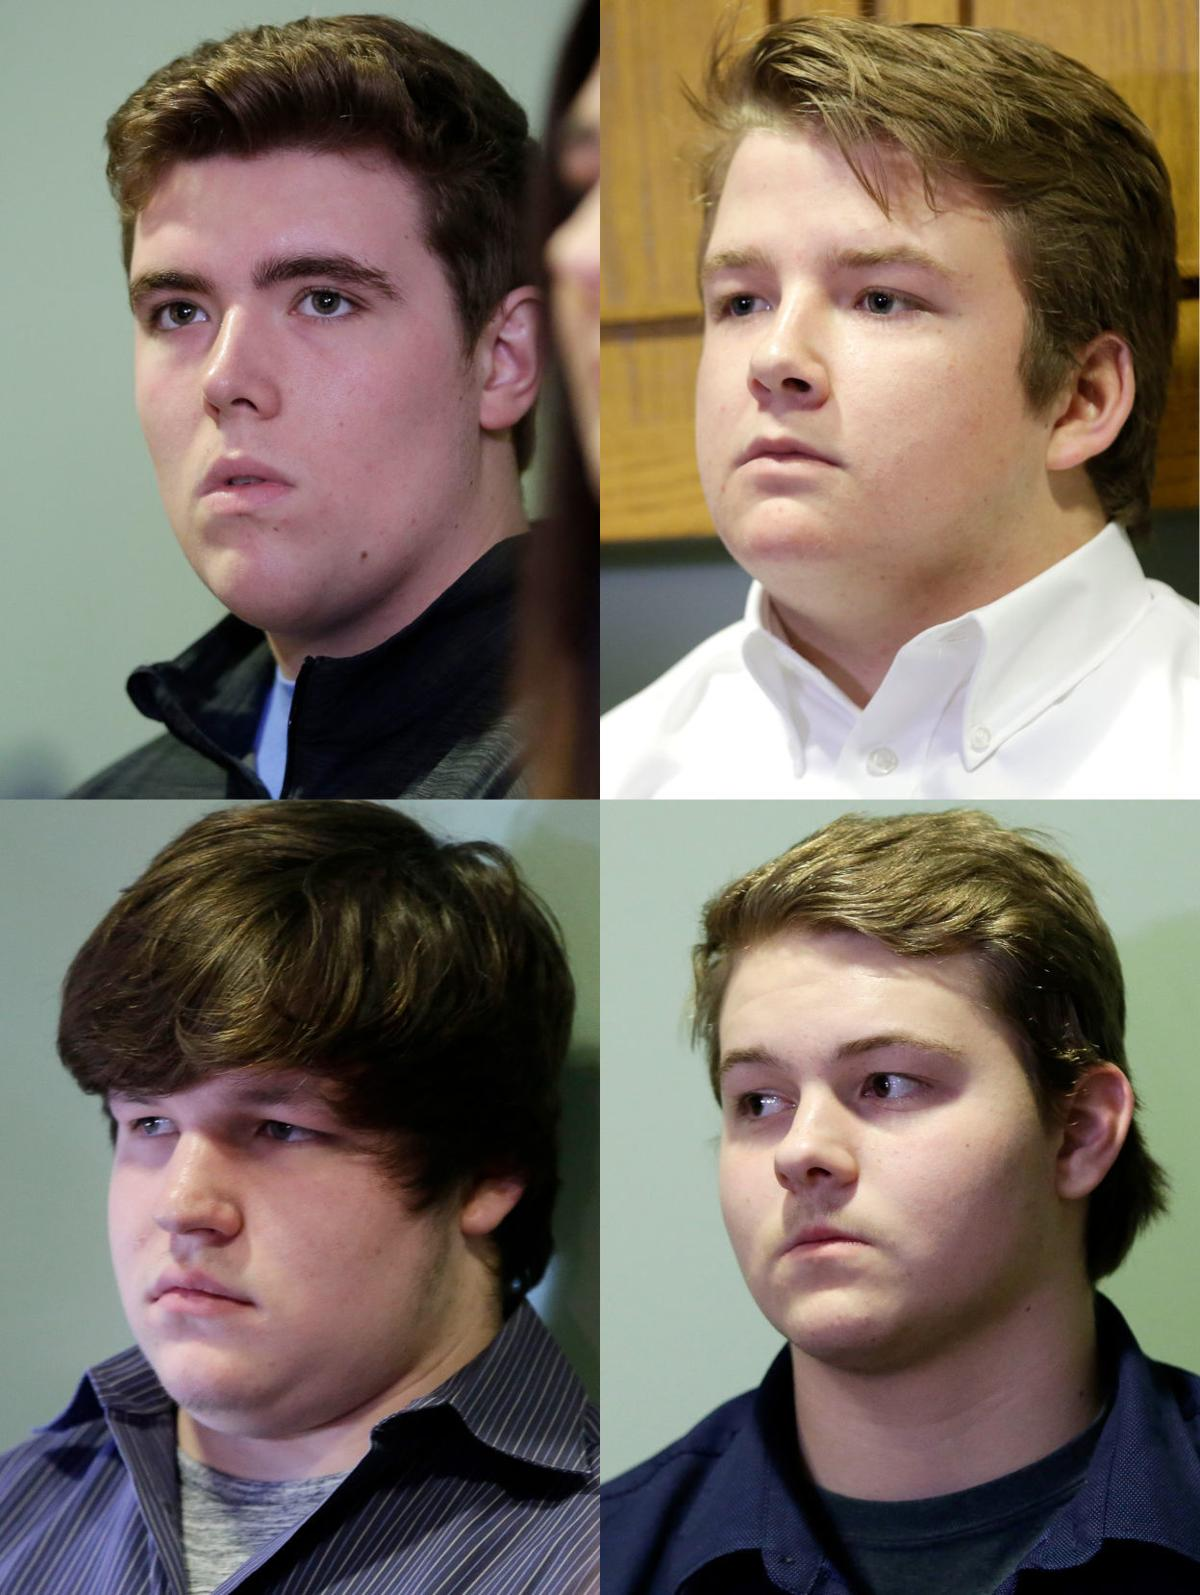 Former football players granted juvenile status, putting